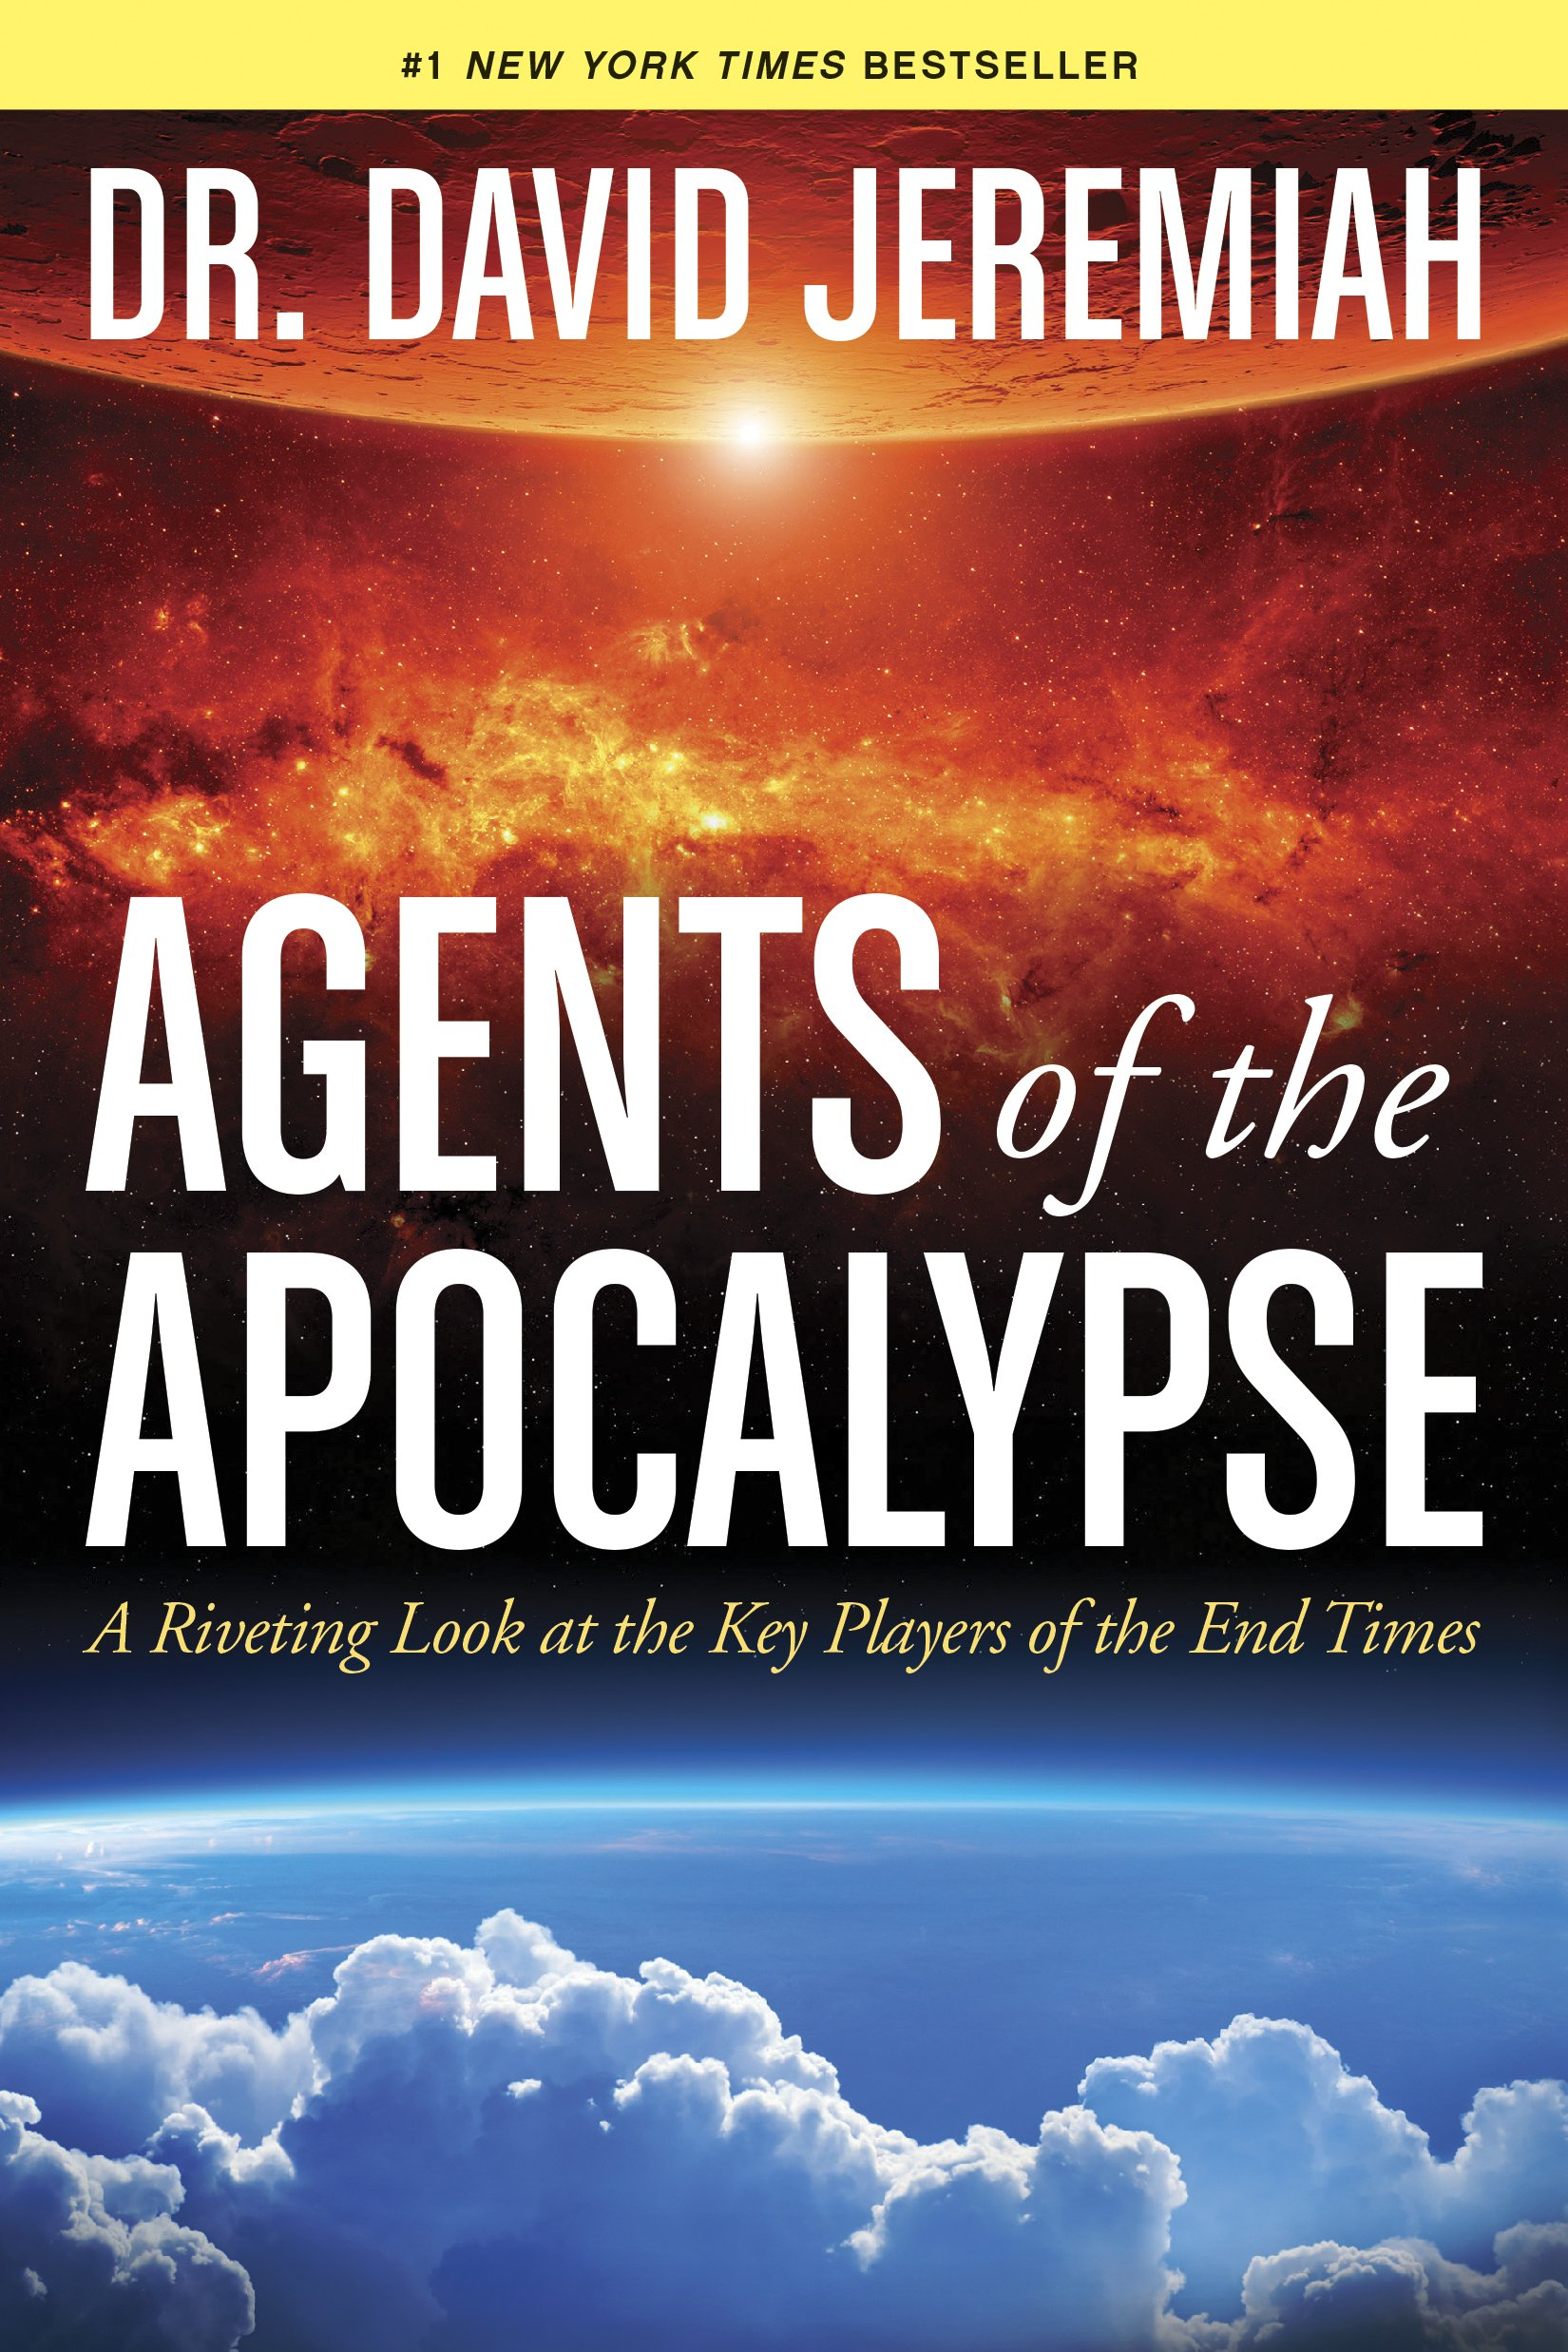 Agents of The Apocalypse  by Dr. David Jeremiah